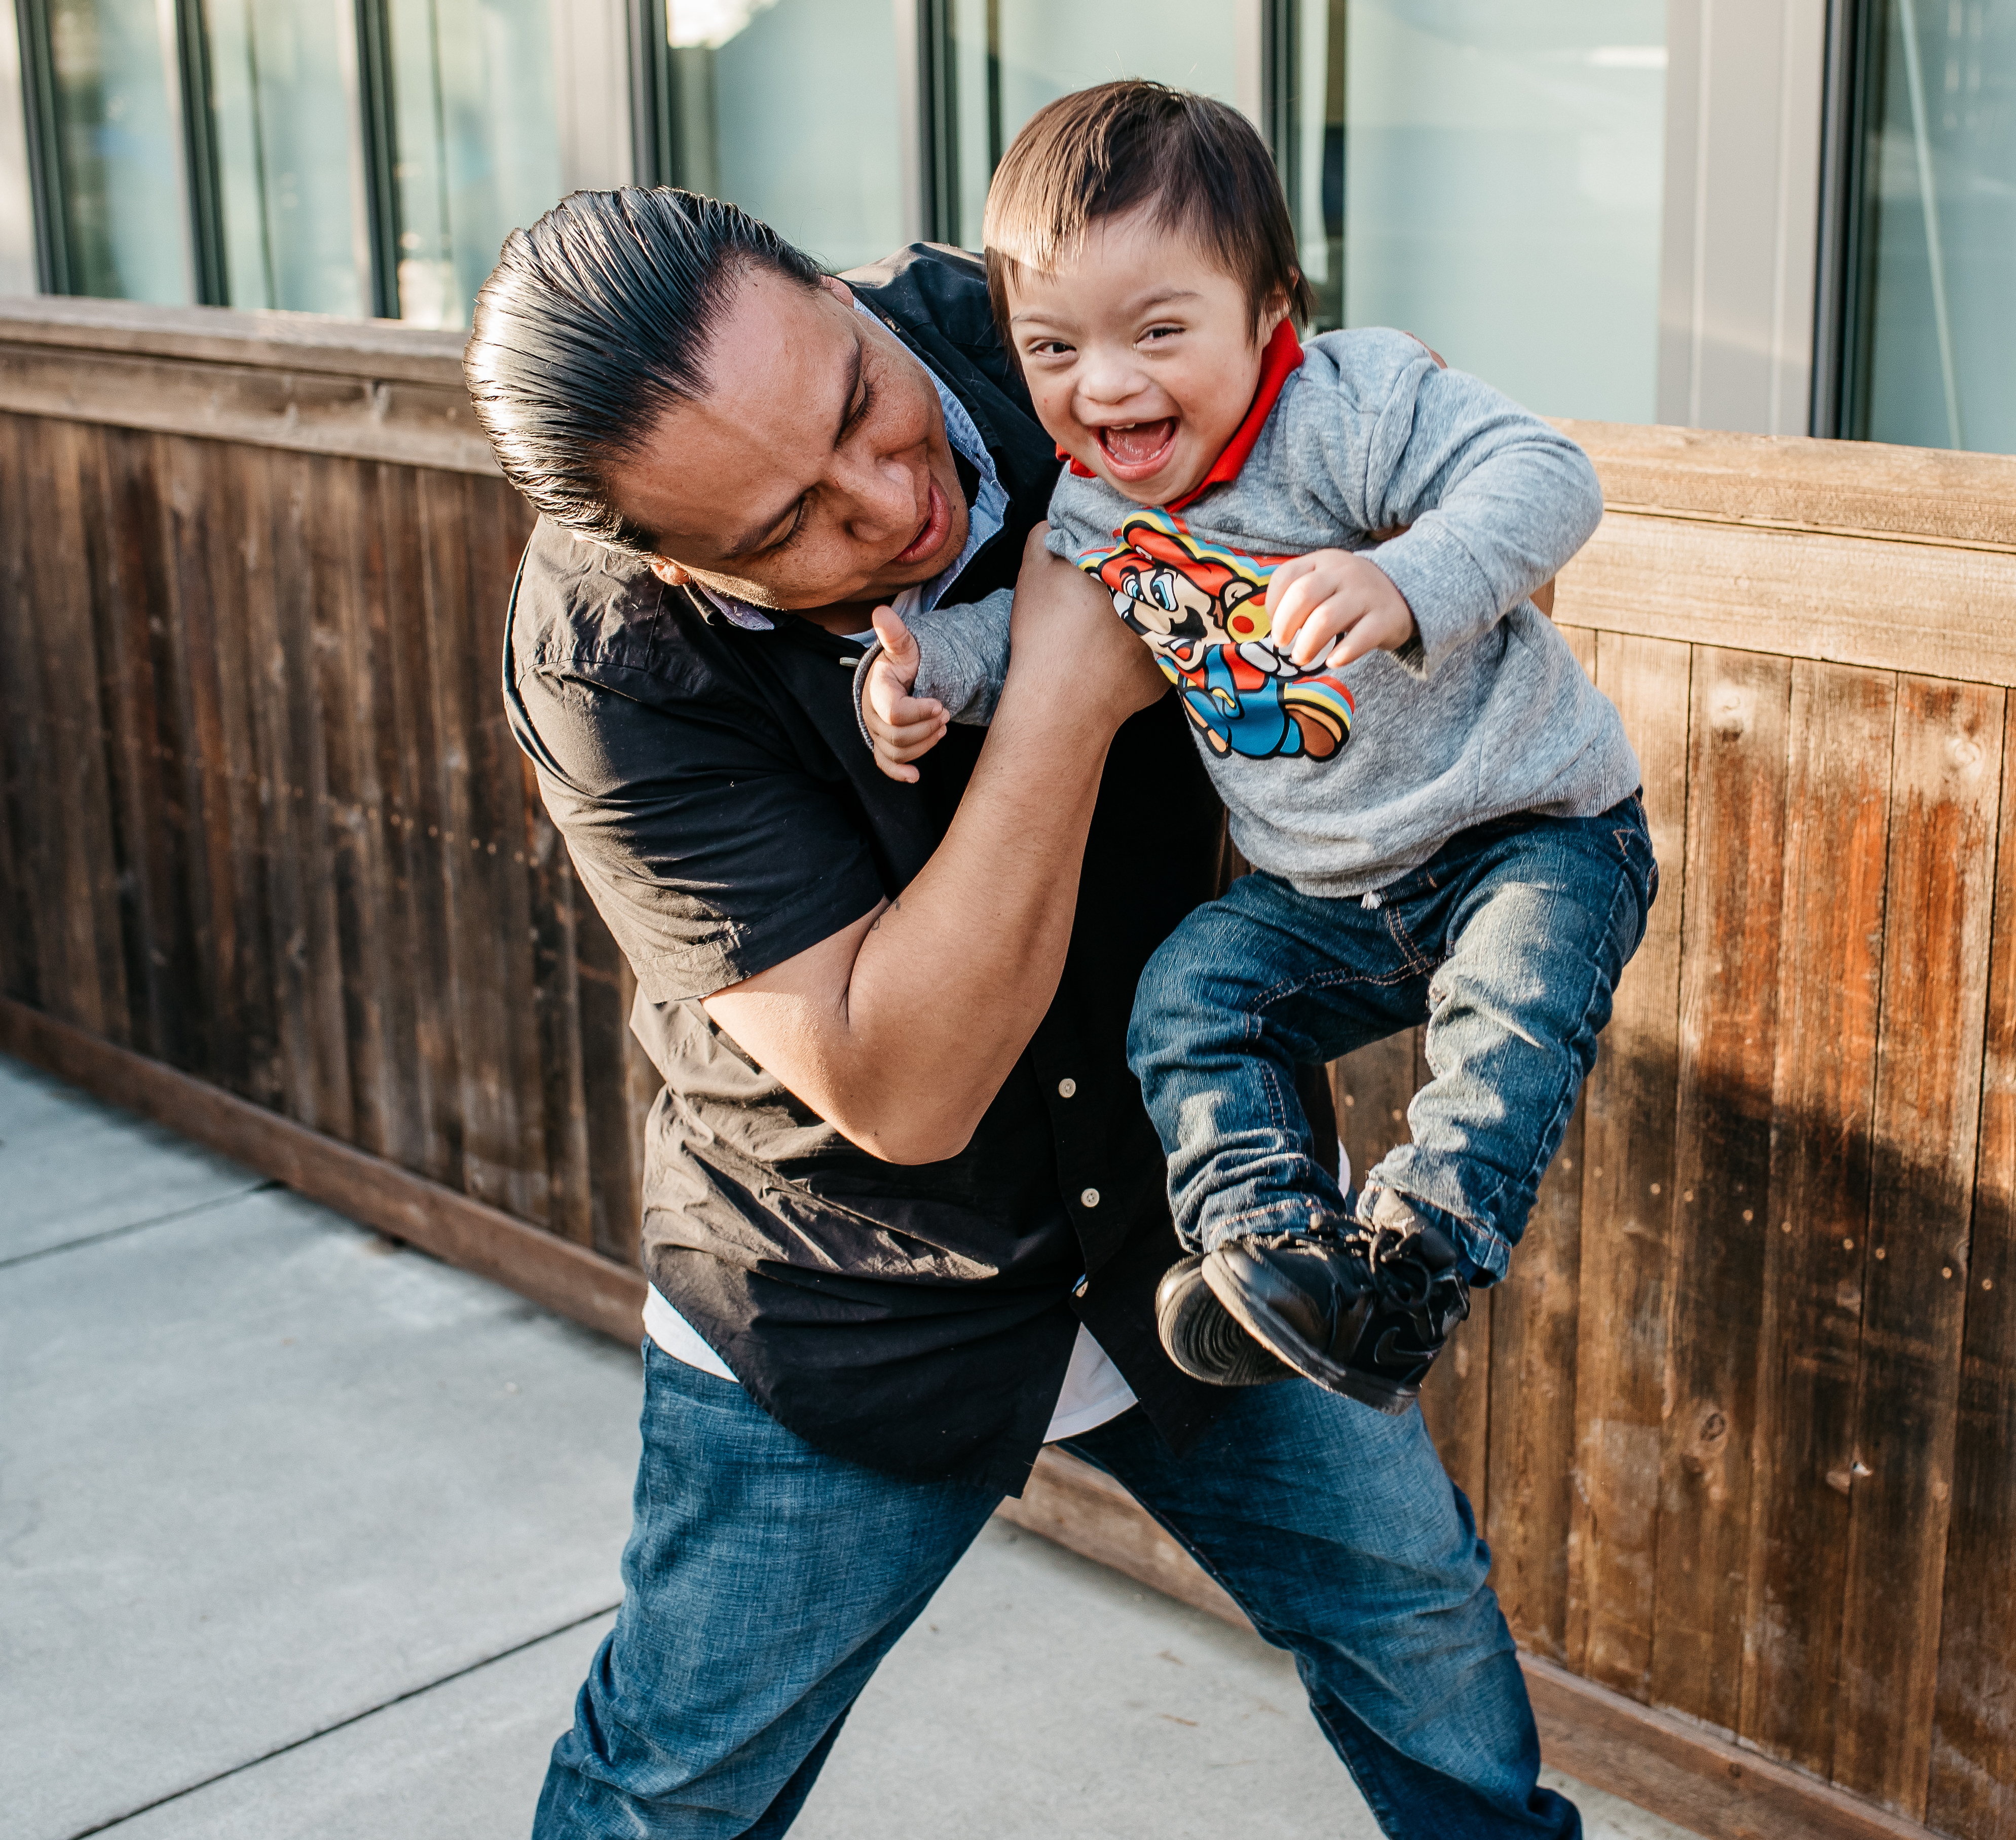 Man holding toddler in the air who is smiling